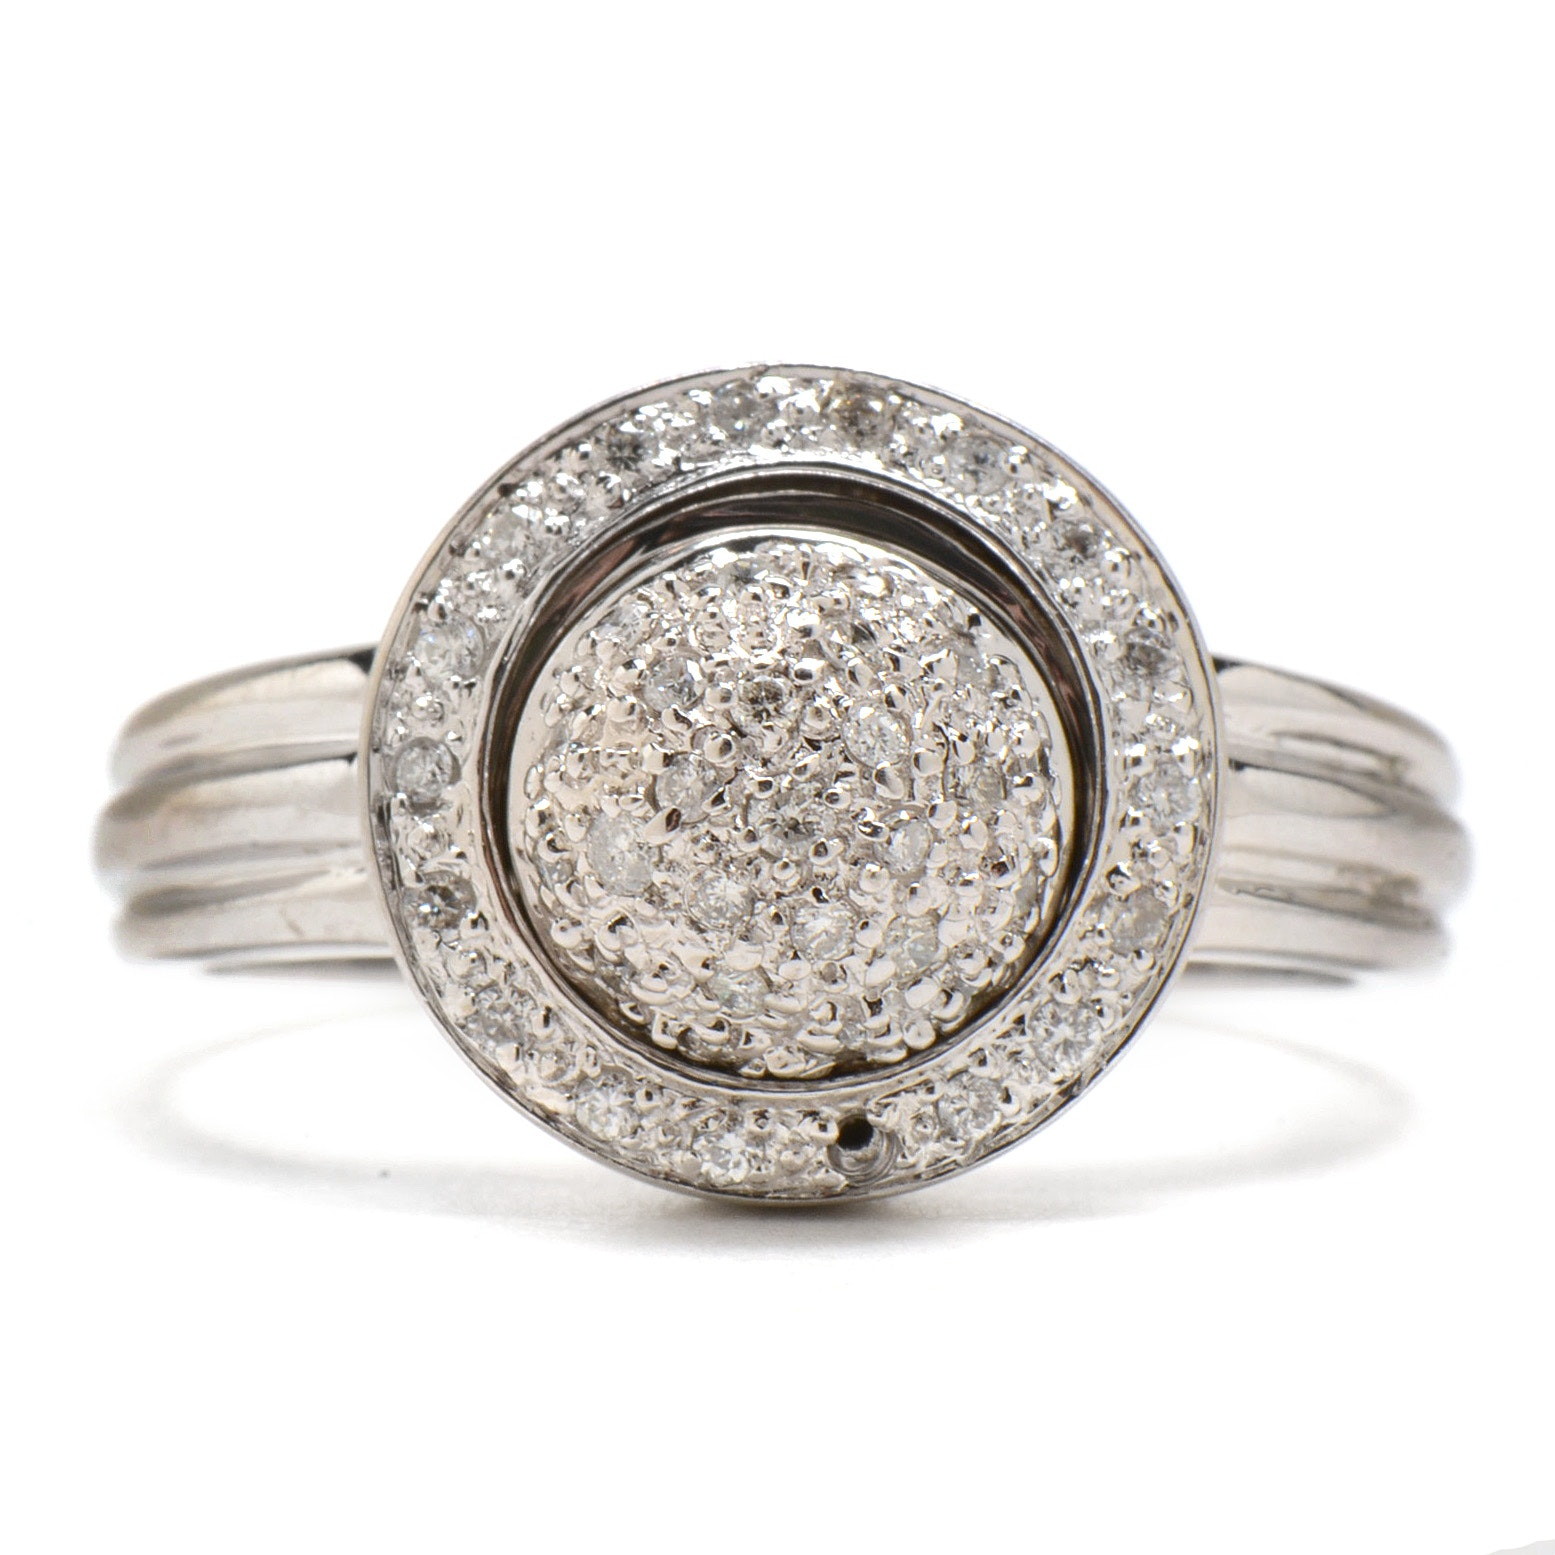 Contemporary 18K White Gold Articulating Diamond Ring